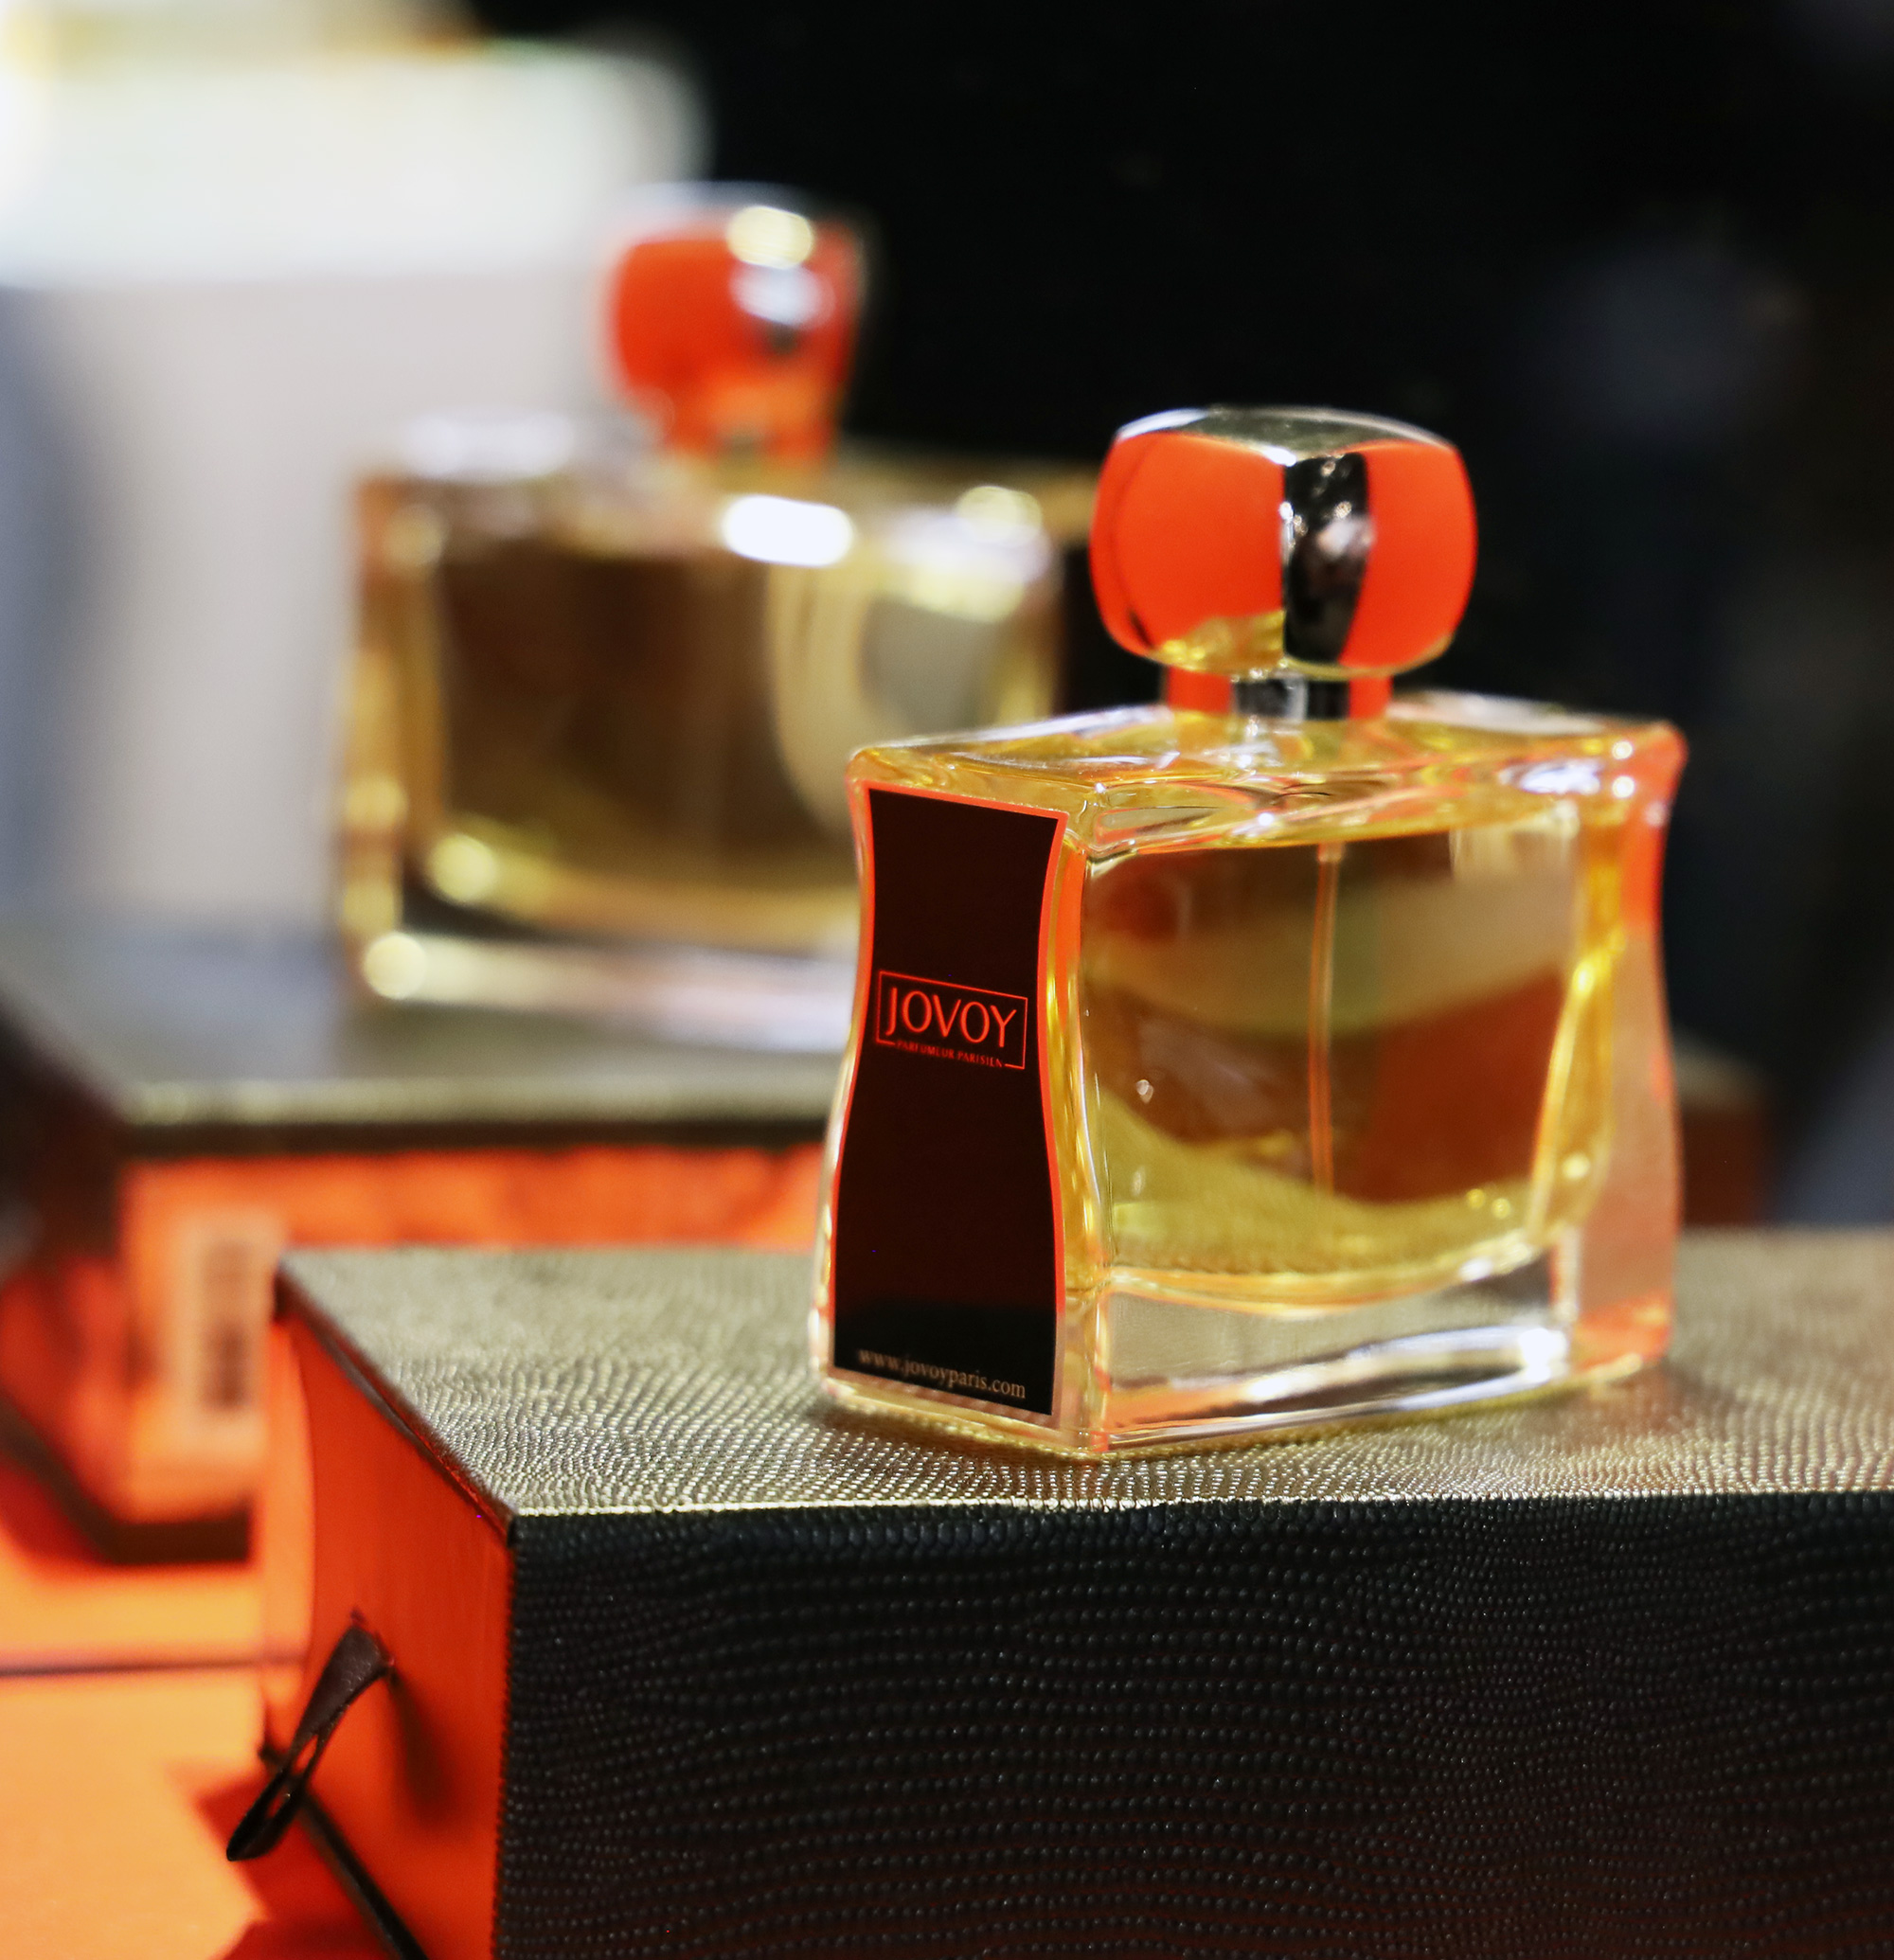 The New Final Touch Or Touche Finale By Jovoy Niche Perfumery